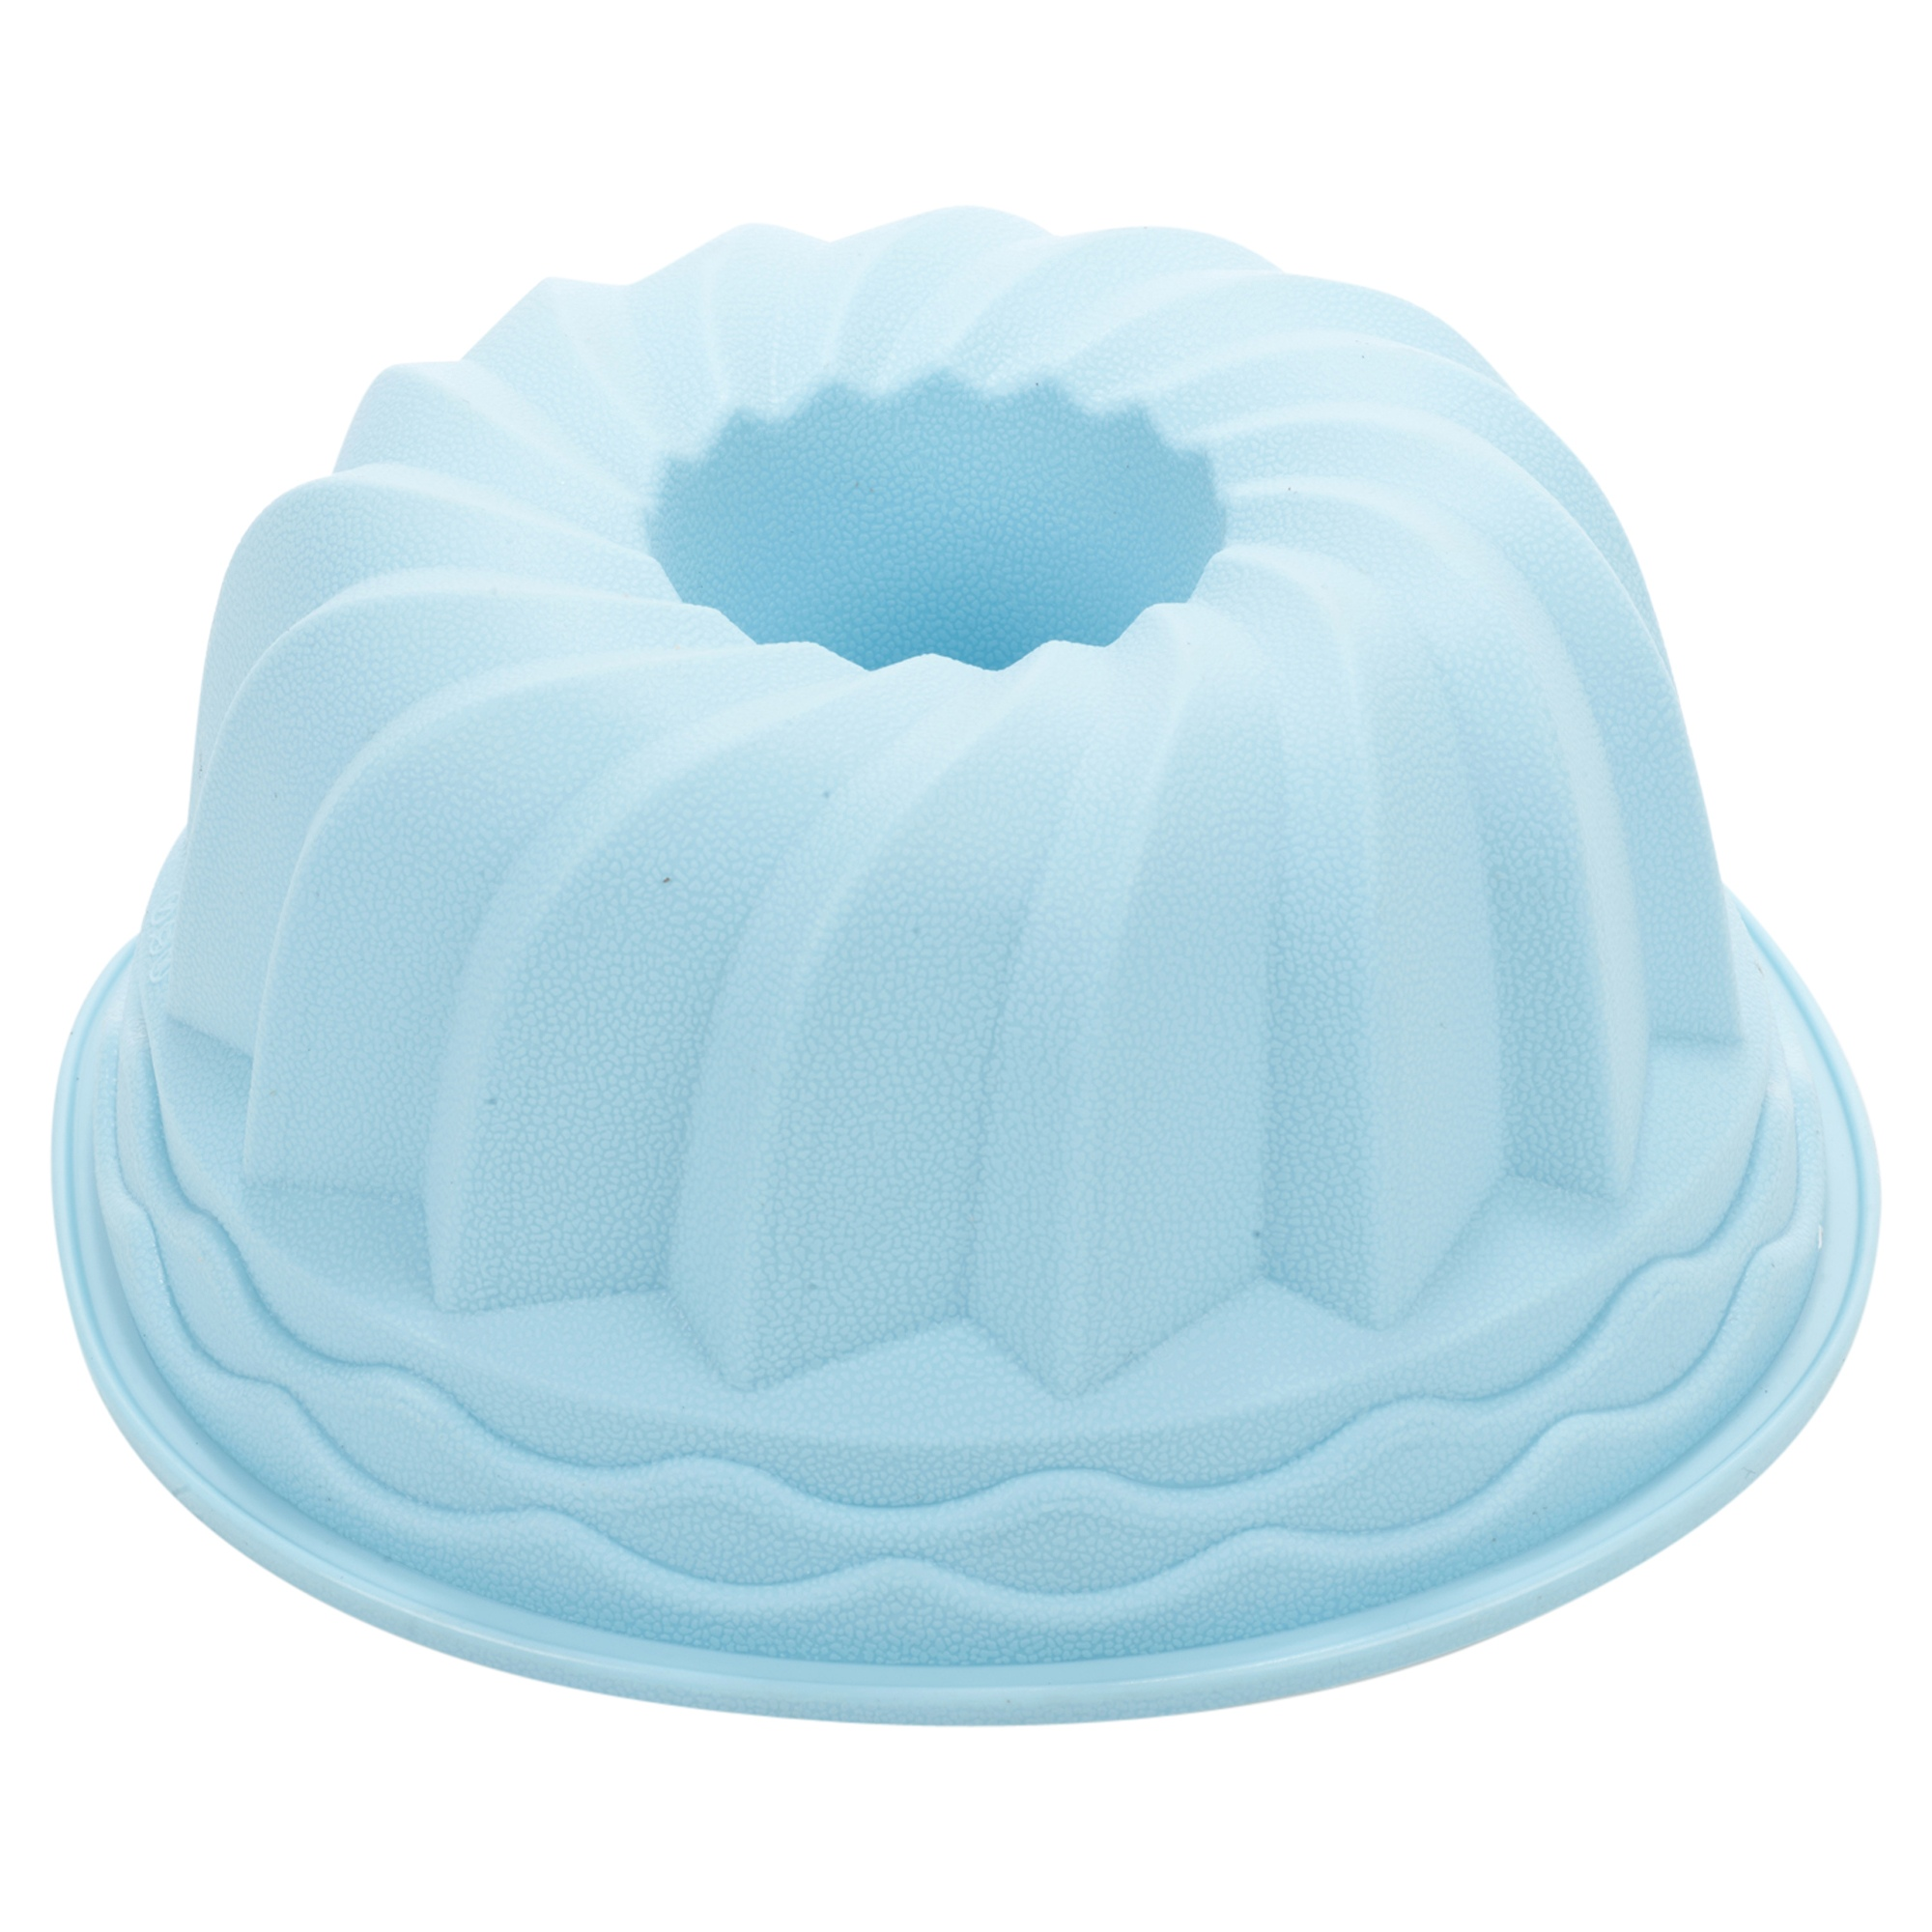 Silicone Bundt Pan Savarin Cake Mould Non Stick Ring